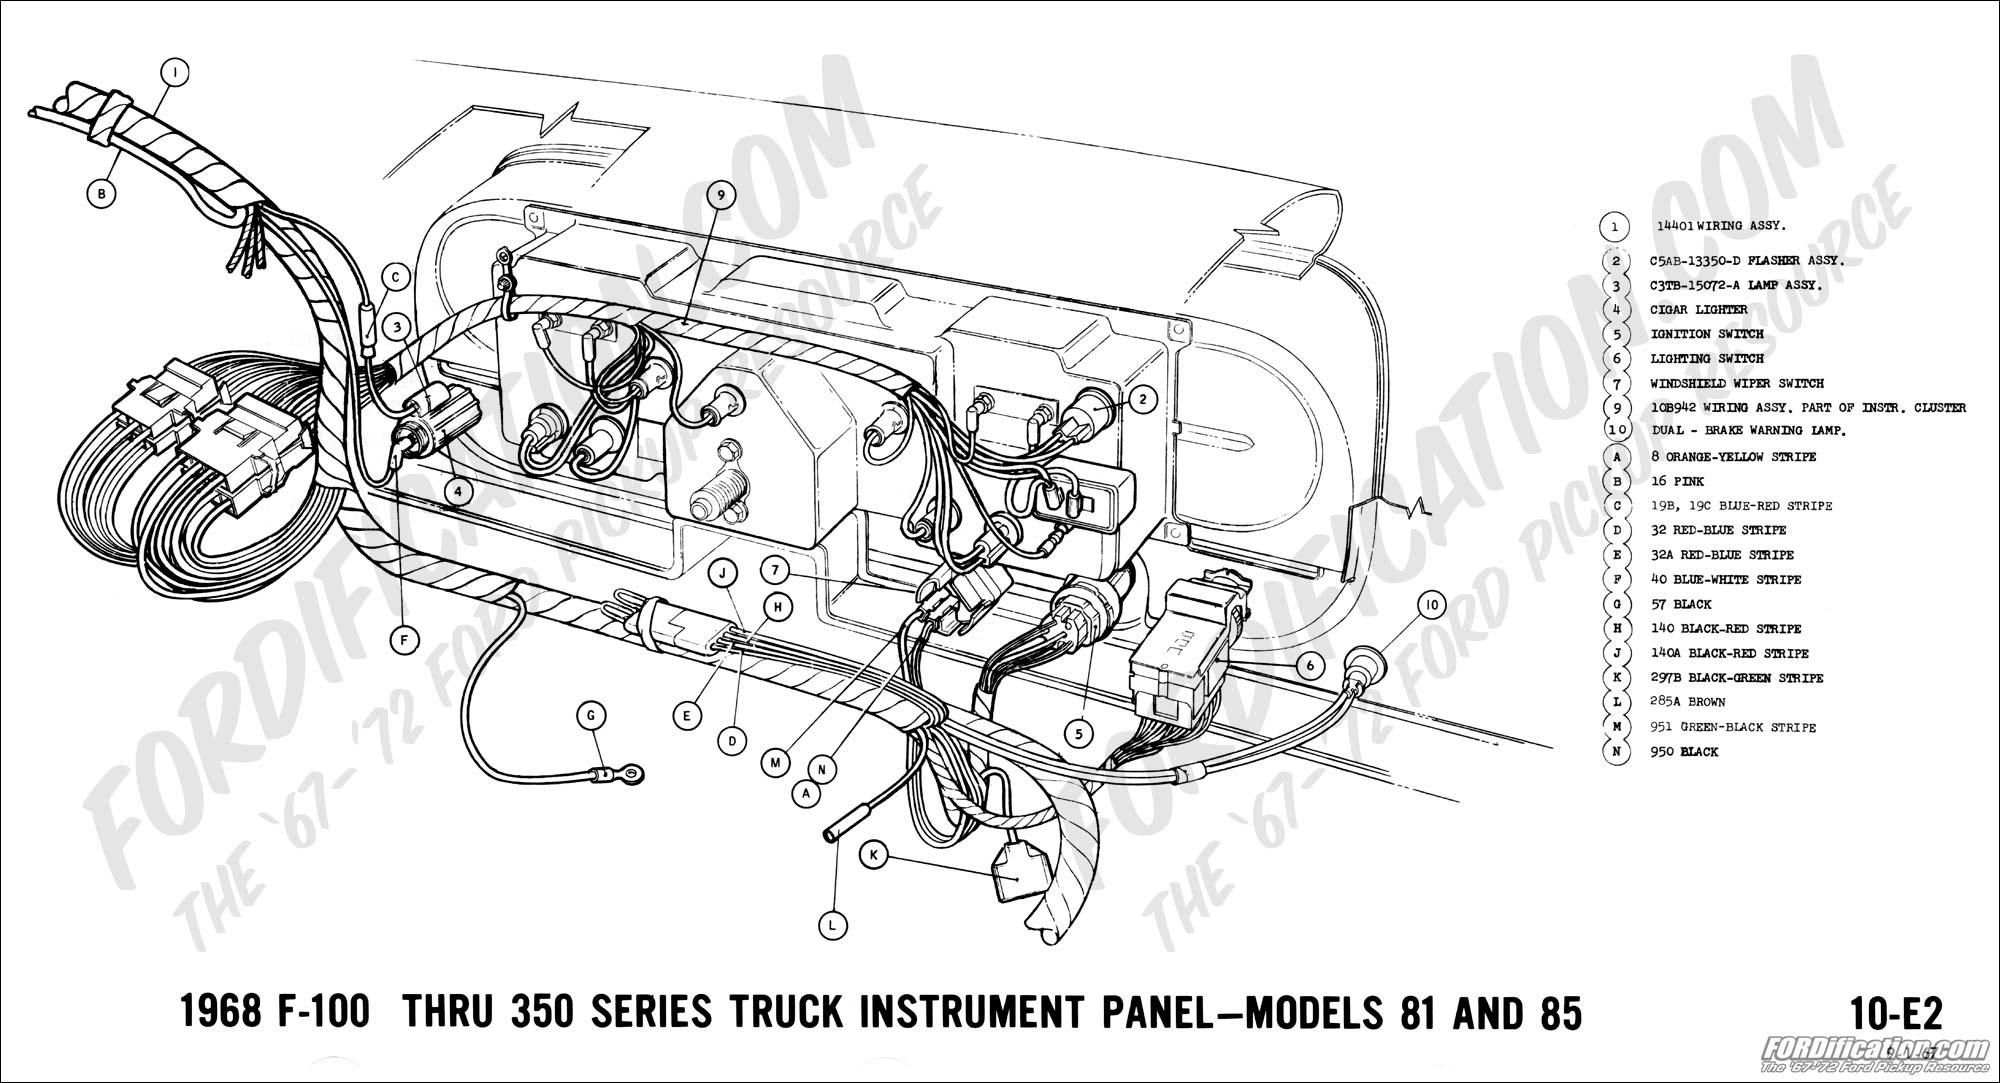 Ford Truck Technical Drawings And Schematics Section H Wiring Lamp Diagrams 1968 F 100 Thru 350 Instrument Panel